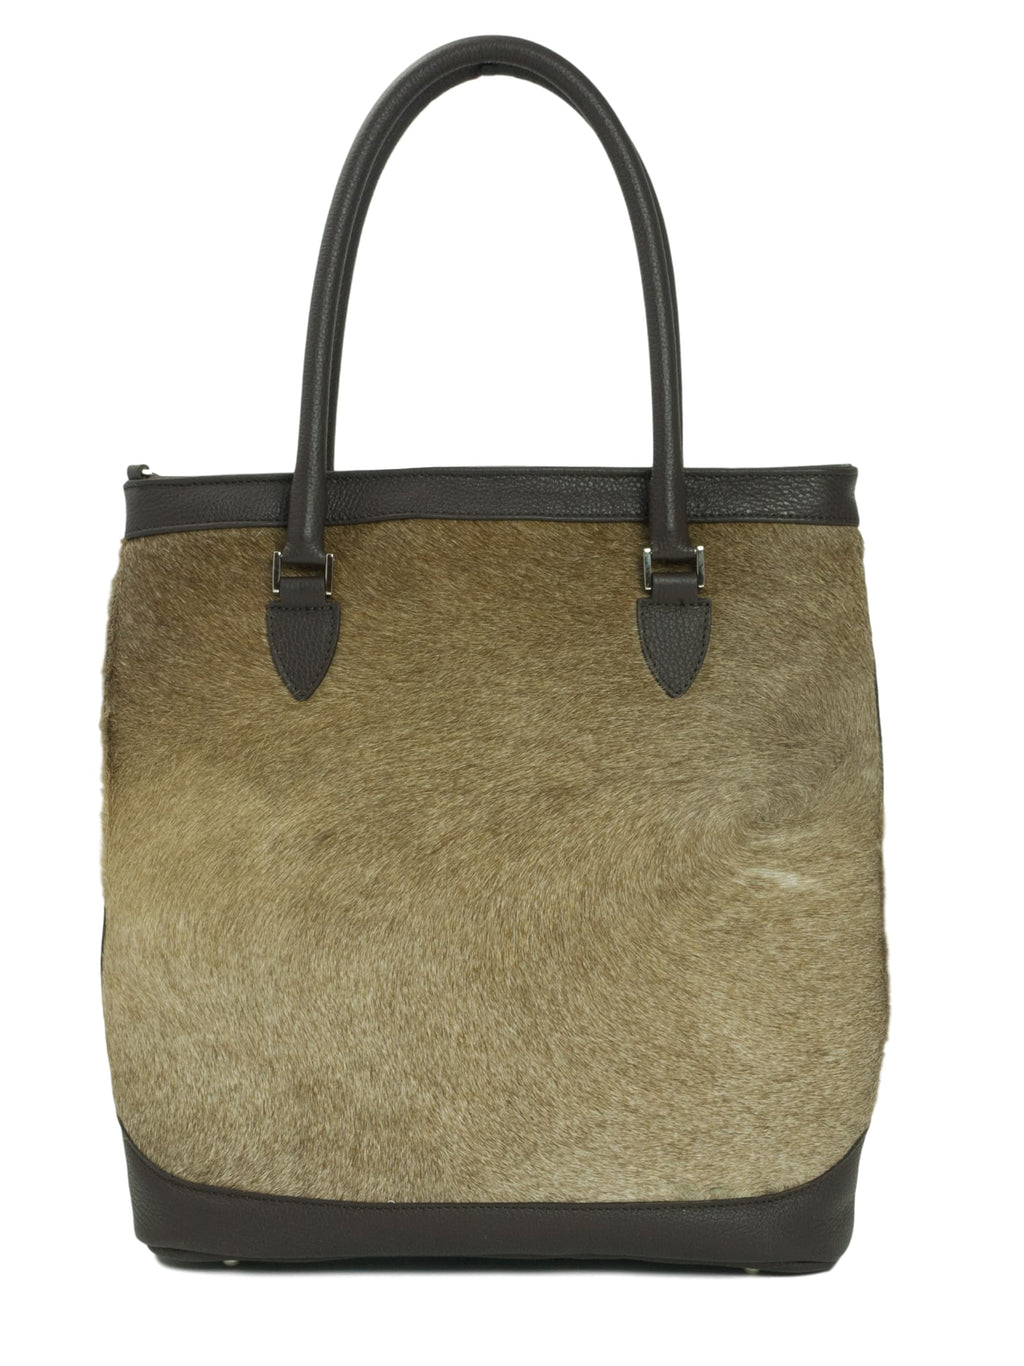 Furry cow hide leather brown tote